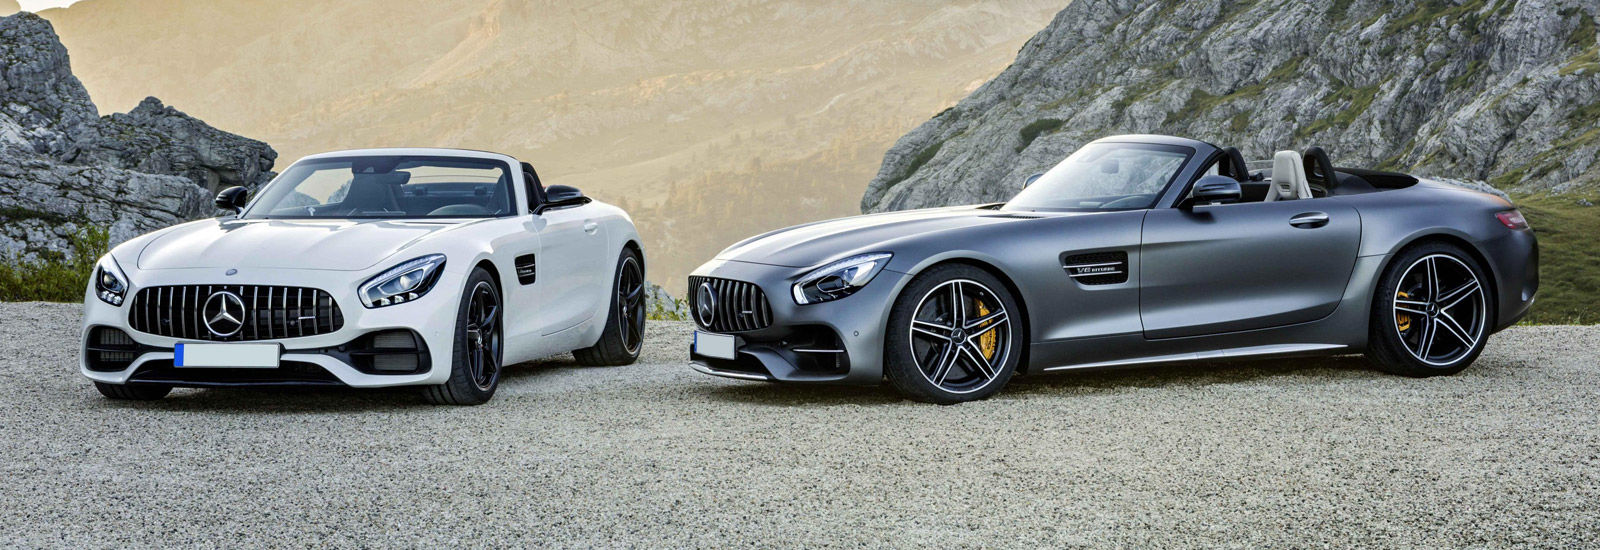 https://photos-0.carwow.co.uk/blog/1600/mercedes-amg-gt-roadster_0.jpg